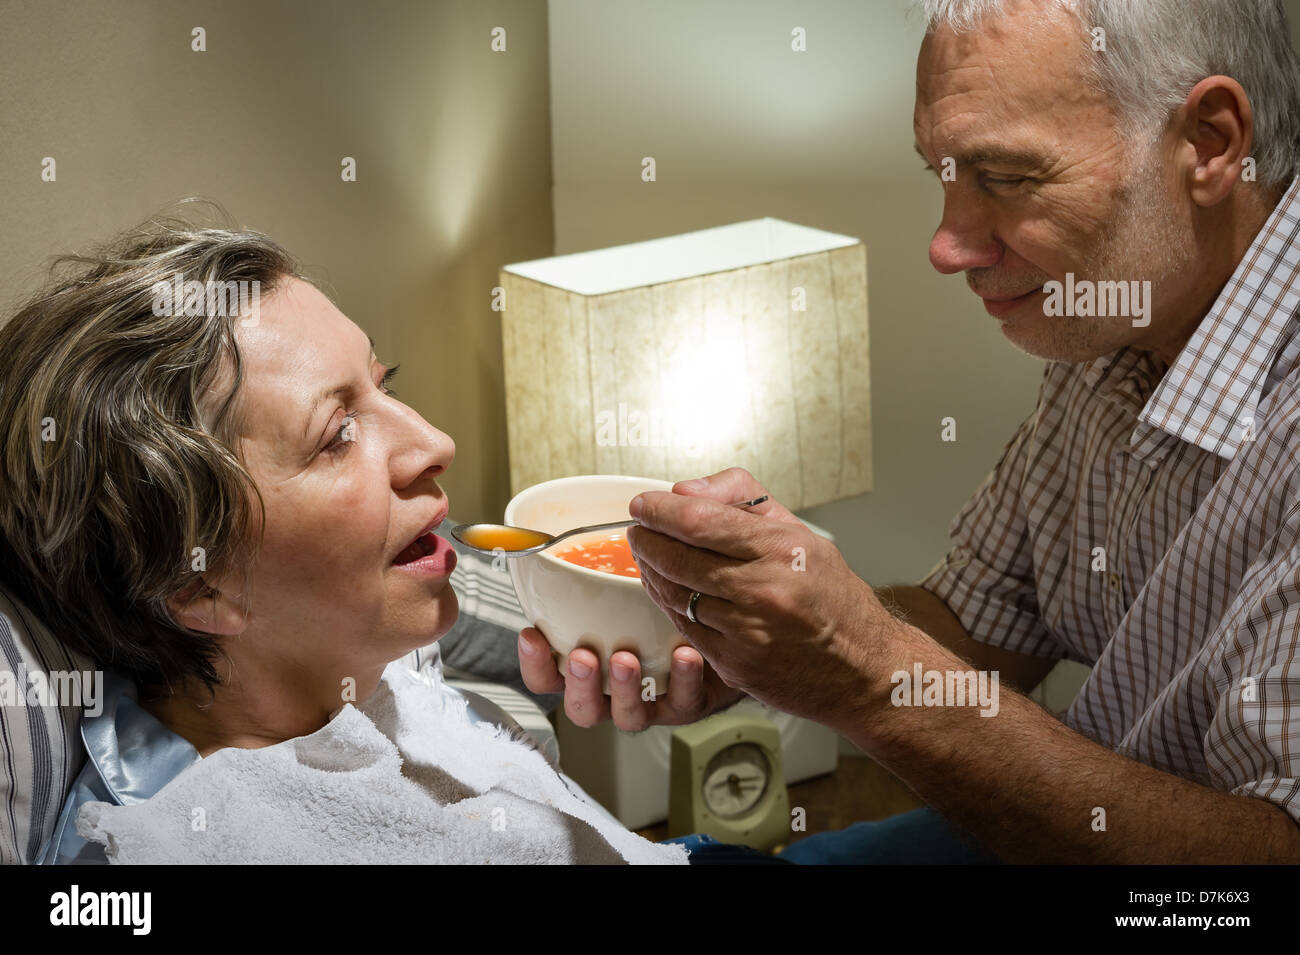 Loving retired husband feeding his ill wife with soup - Stock Image